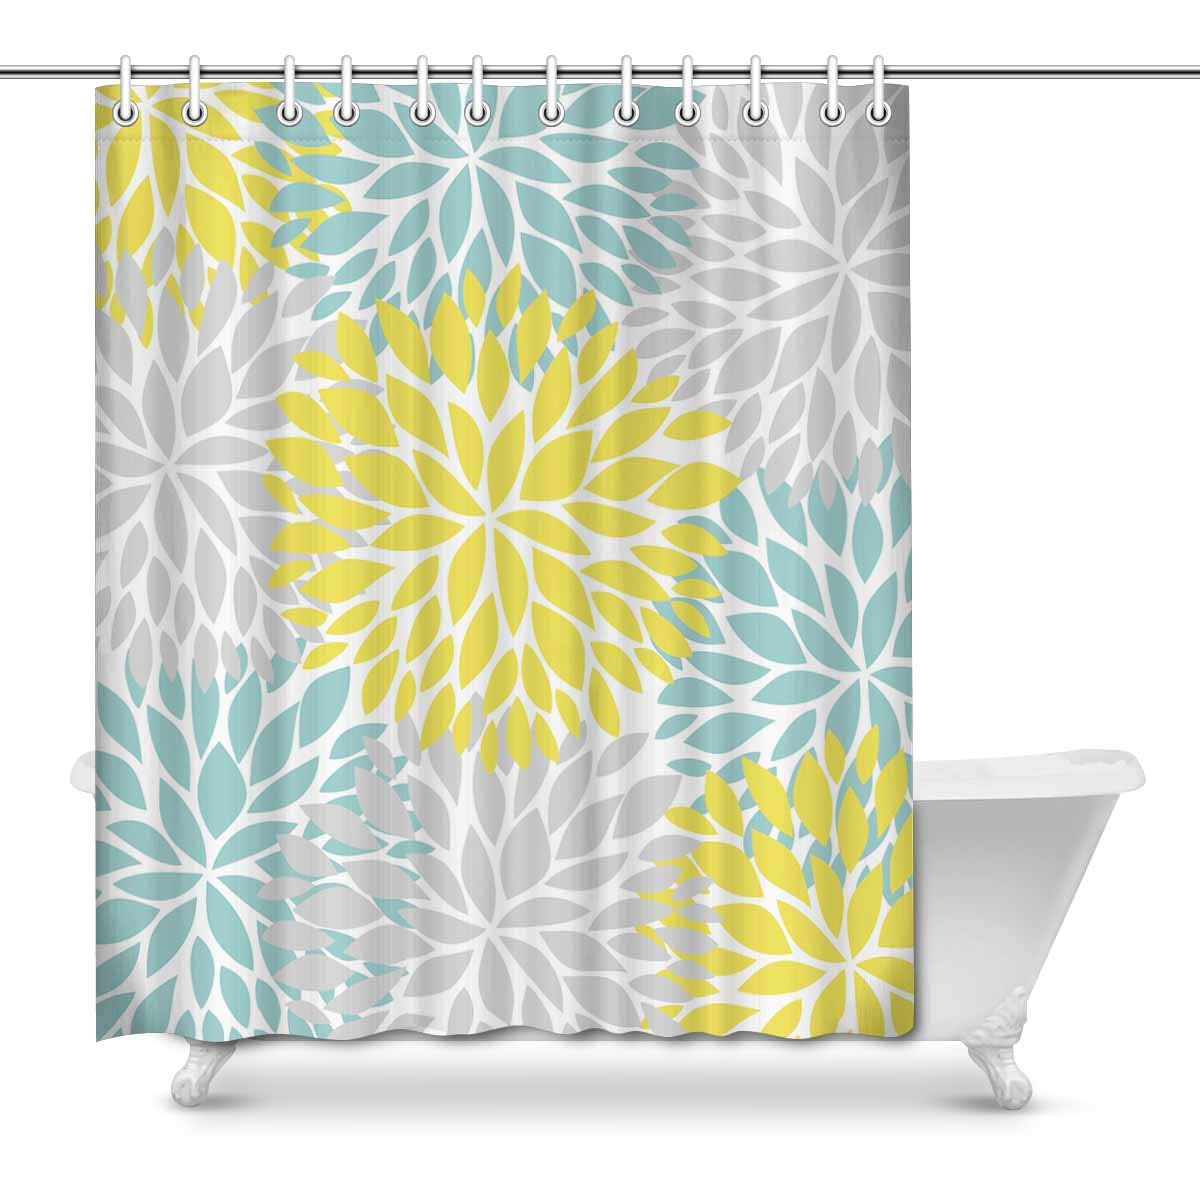 MKHERT Dahlia Pinnata Flower Yellow Light Blue and Gray Decor Waterproof Polyester Bathroom Shower Curtain Bath Decorations 66x72 inch